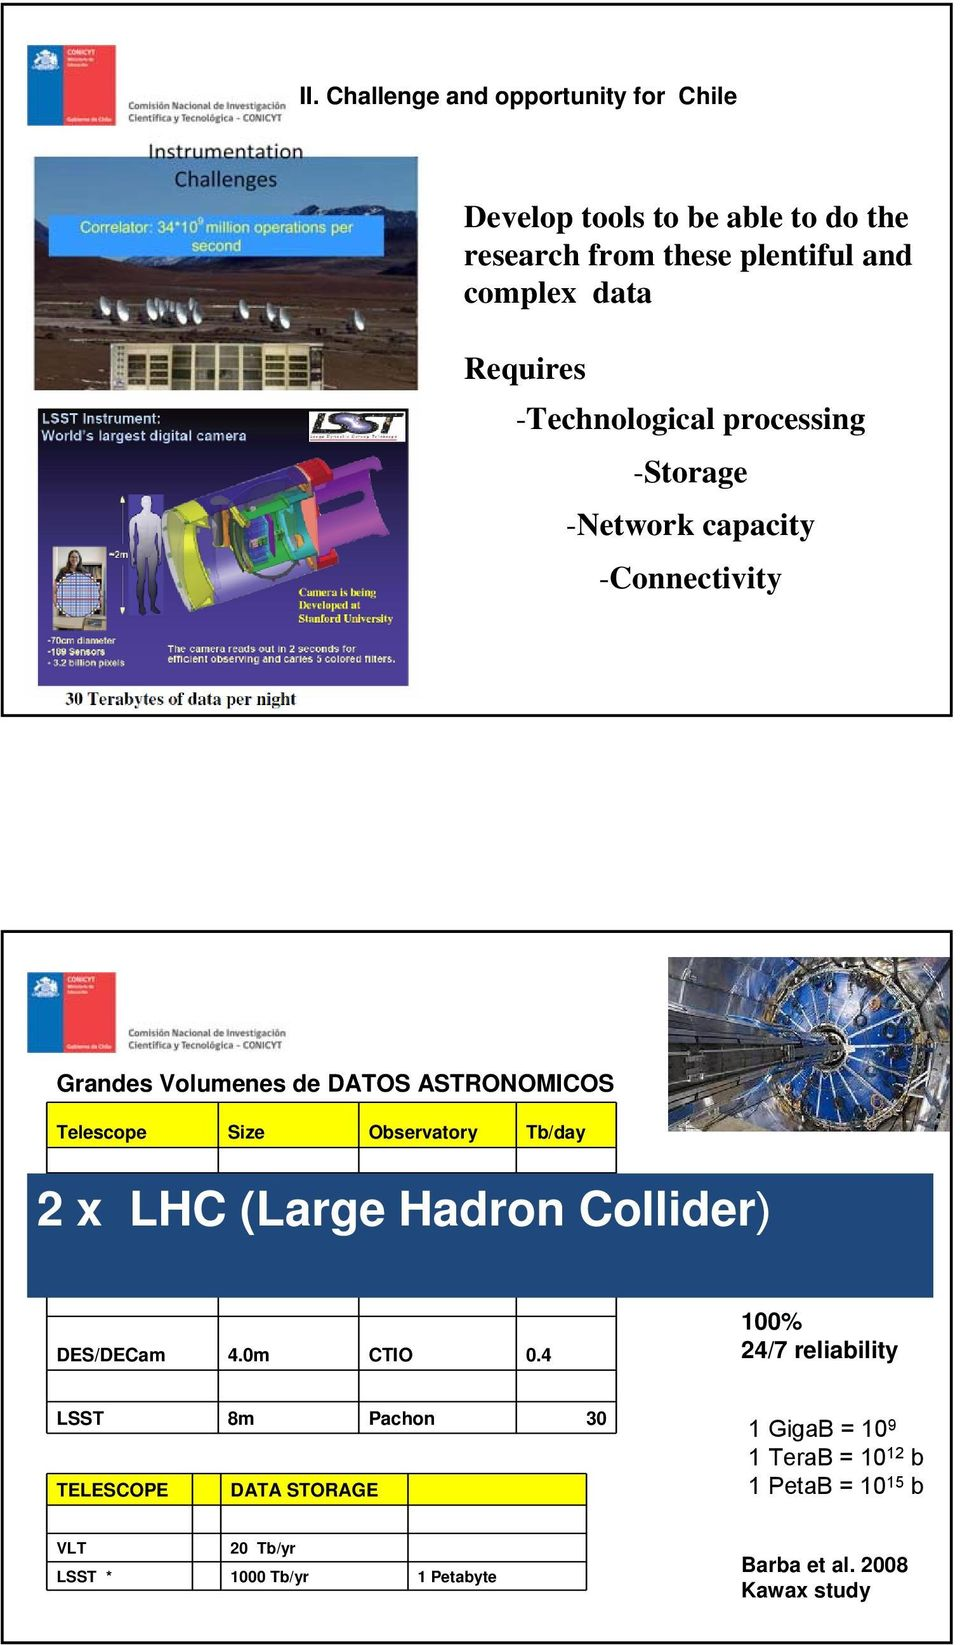 4 2 x LHC (Large Hadron Collider) Transferencia 100 bps ALMA 66x12m Chajnantor 0.5 continuo DES/DECam 4.0m CTIO 0.